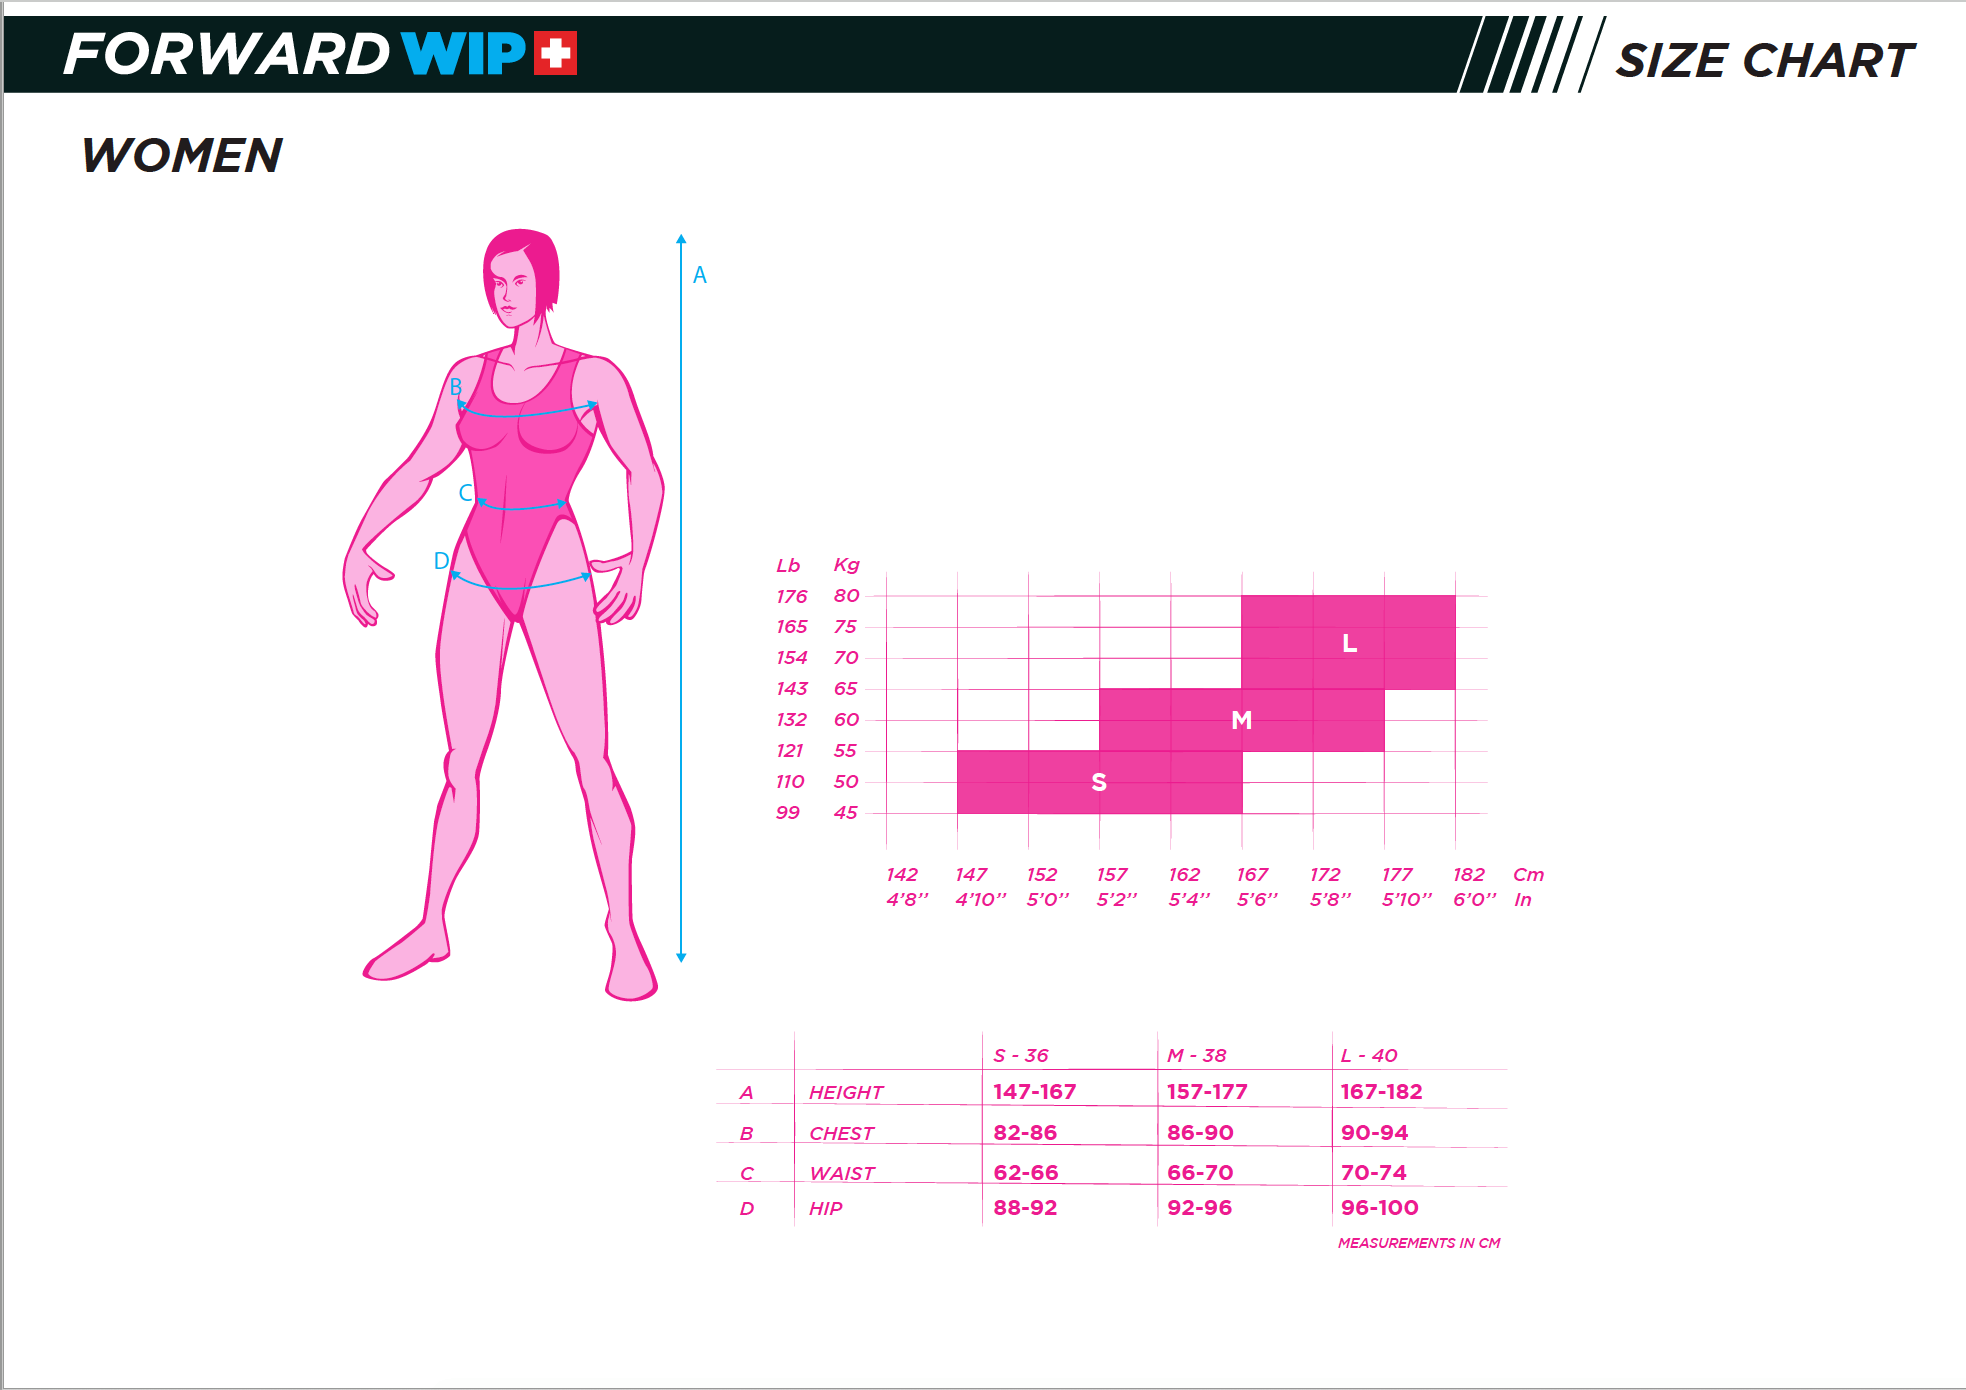 boat-crew-gear-forward-wip-womens-sizing-2019.png